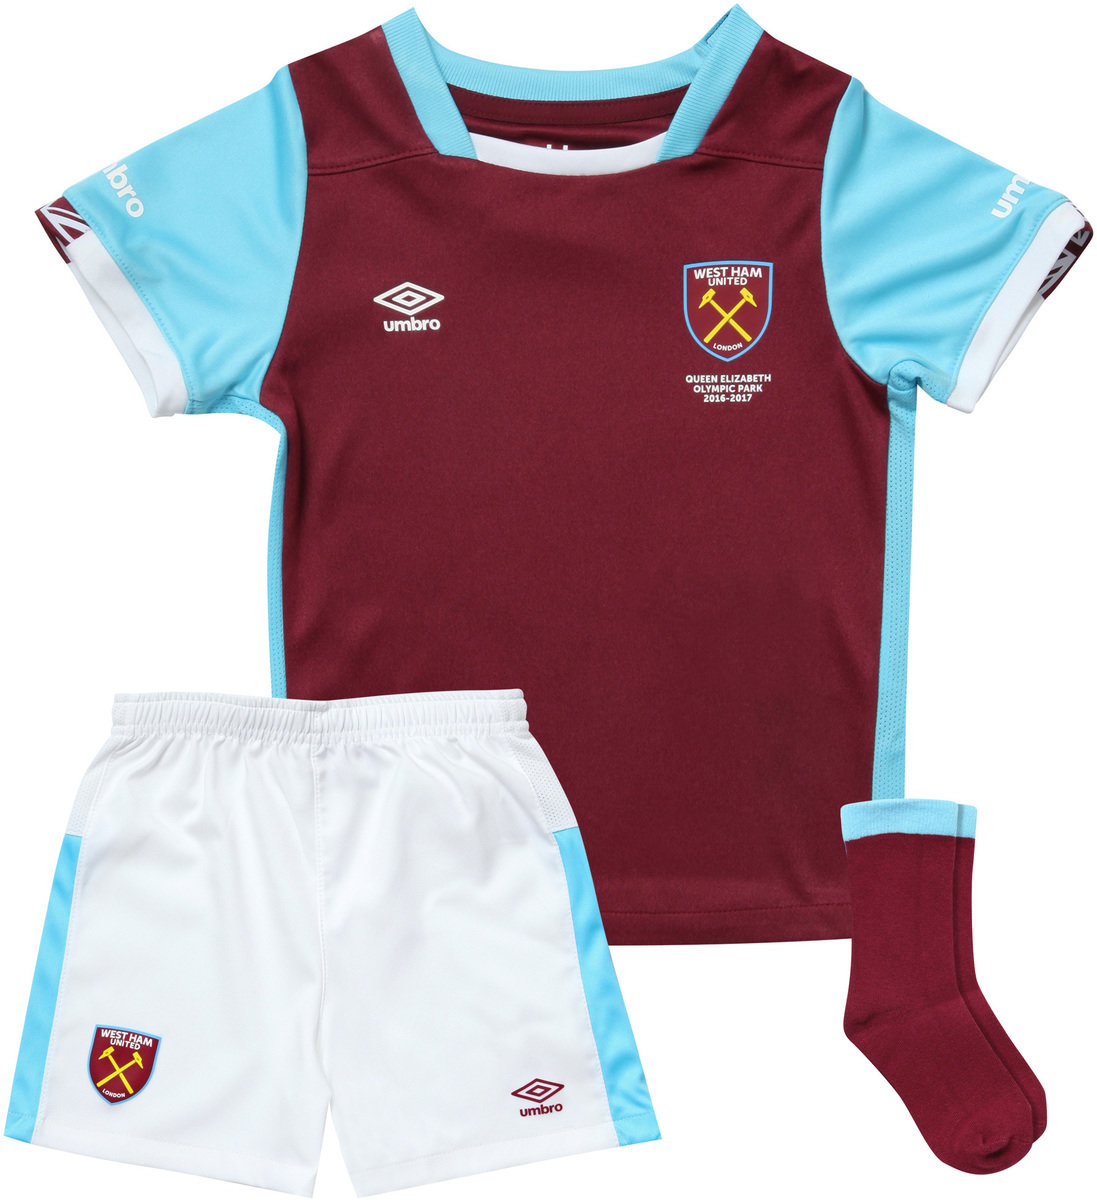 West ham united kit linepc for Kit west homes